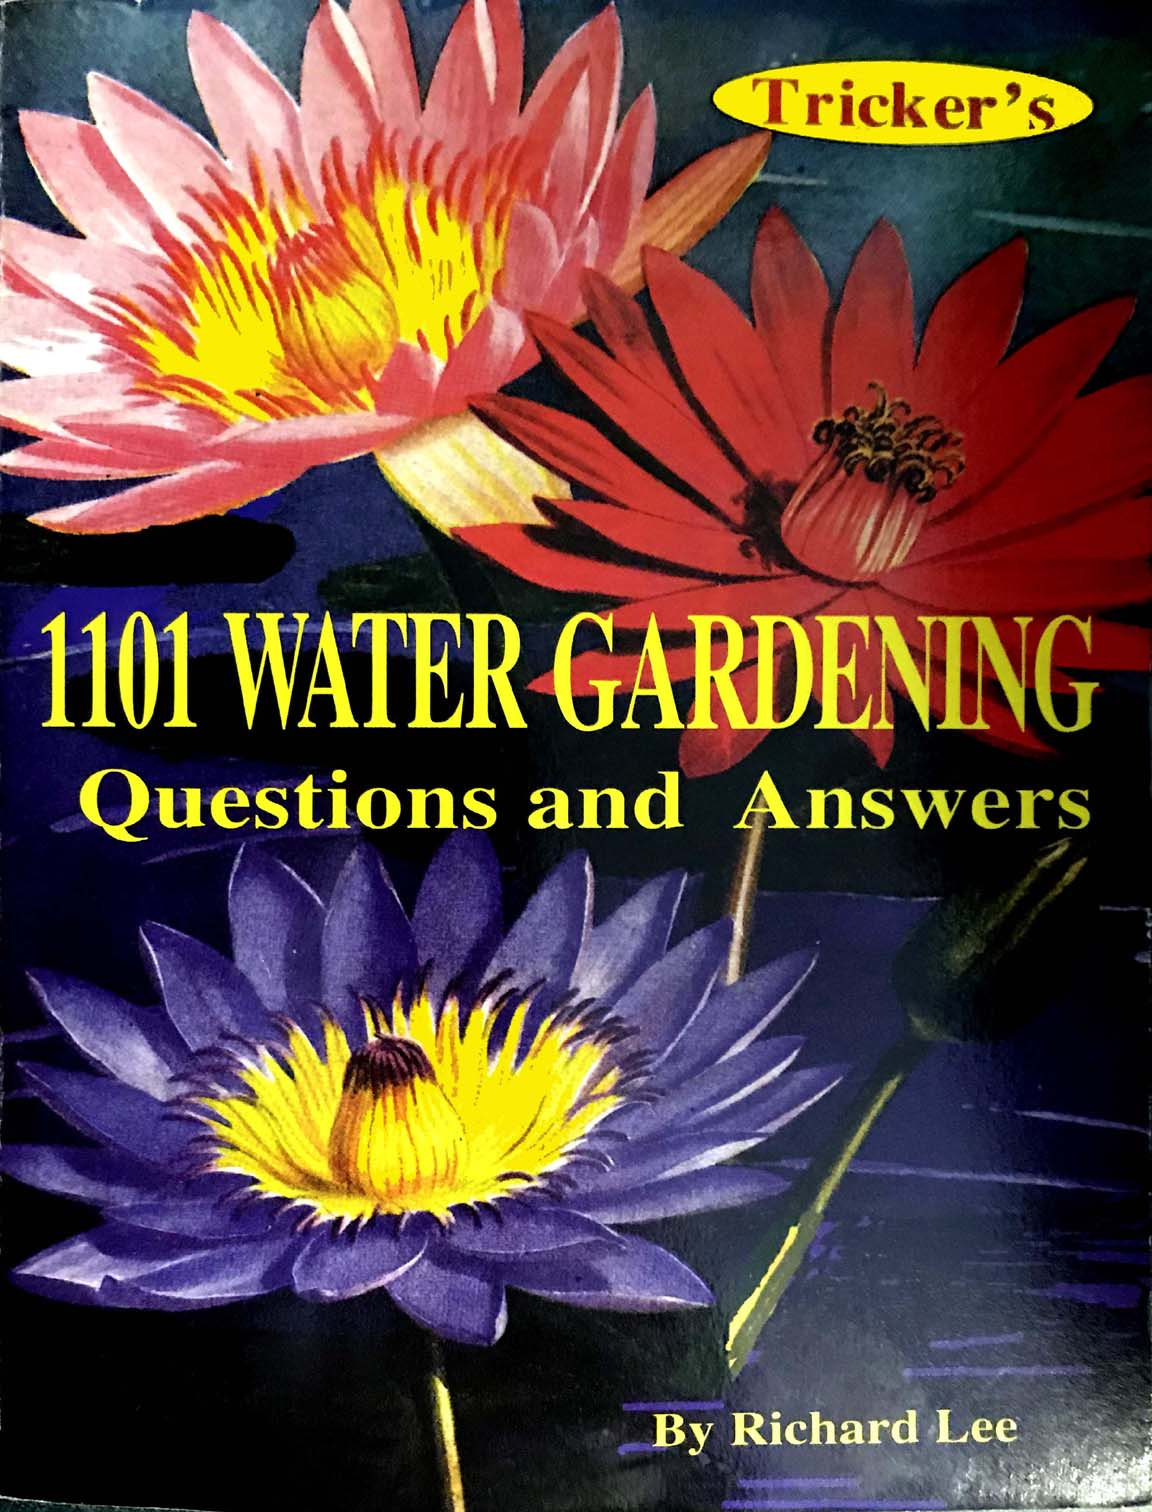 FREE SHIPPING:  1101 Water Gardening Questions and Answers